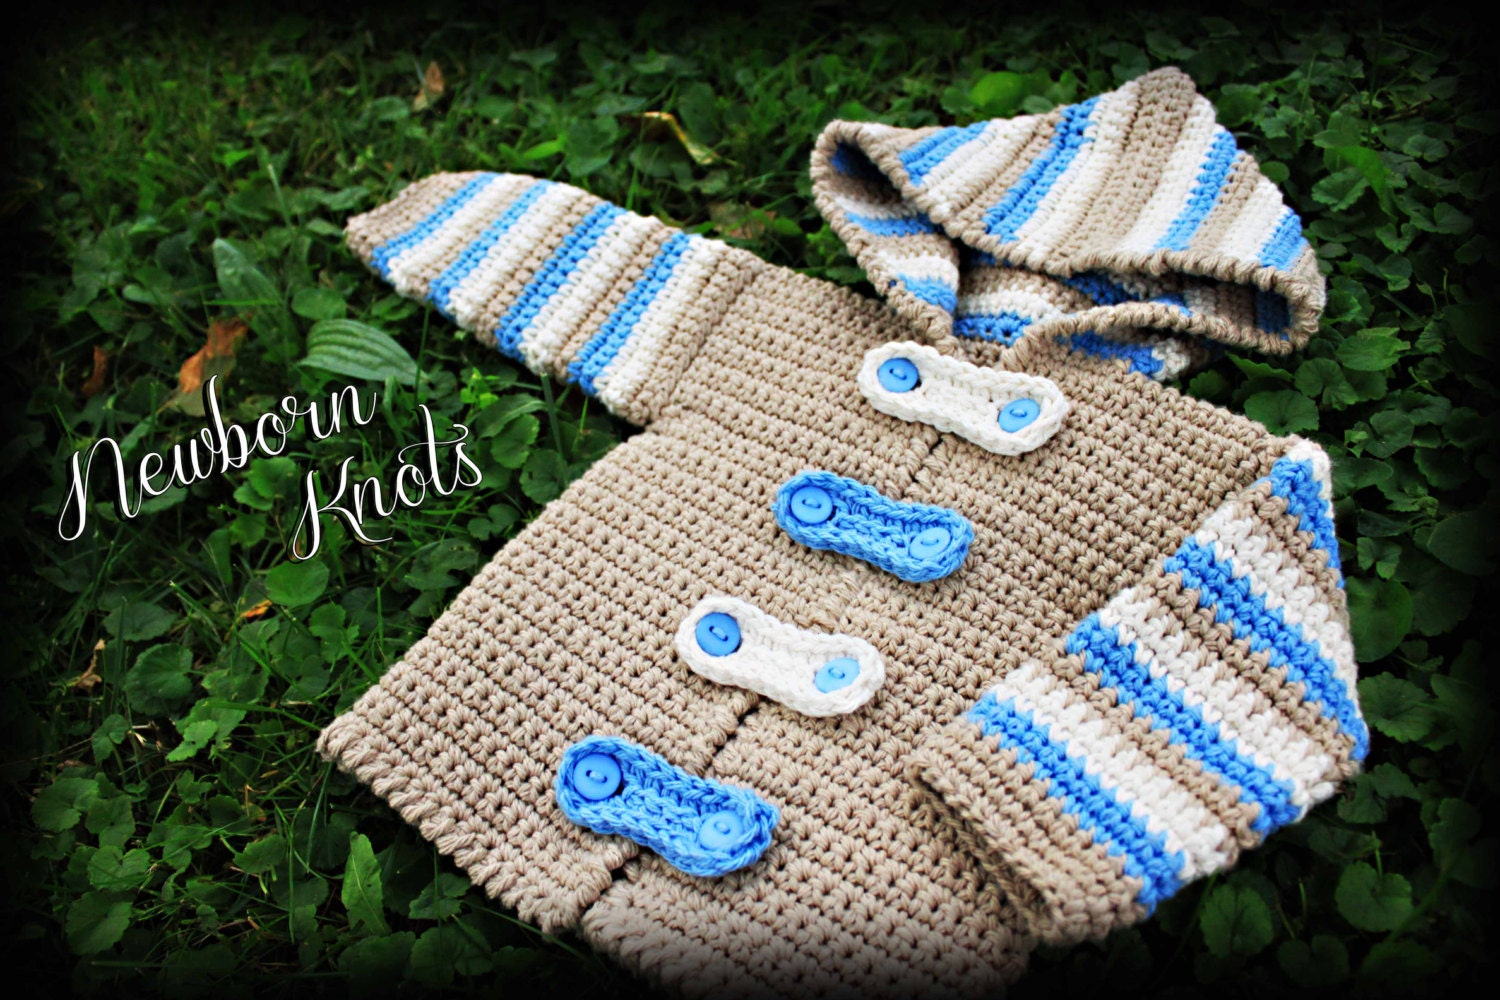 Crochet pattern for baby boy or girl striped hoodie sweater crochet pattern for baby boy or girl striped hoodie sweatercardigan pattern number 027 instant download bankloansurffo Choice Image